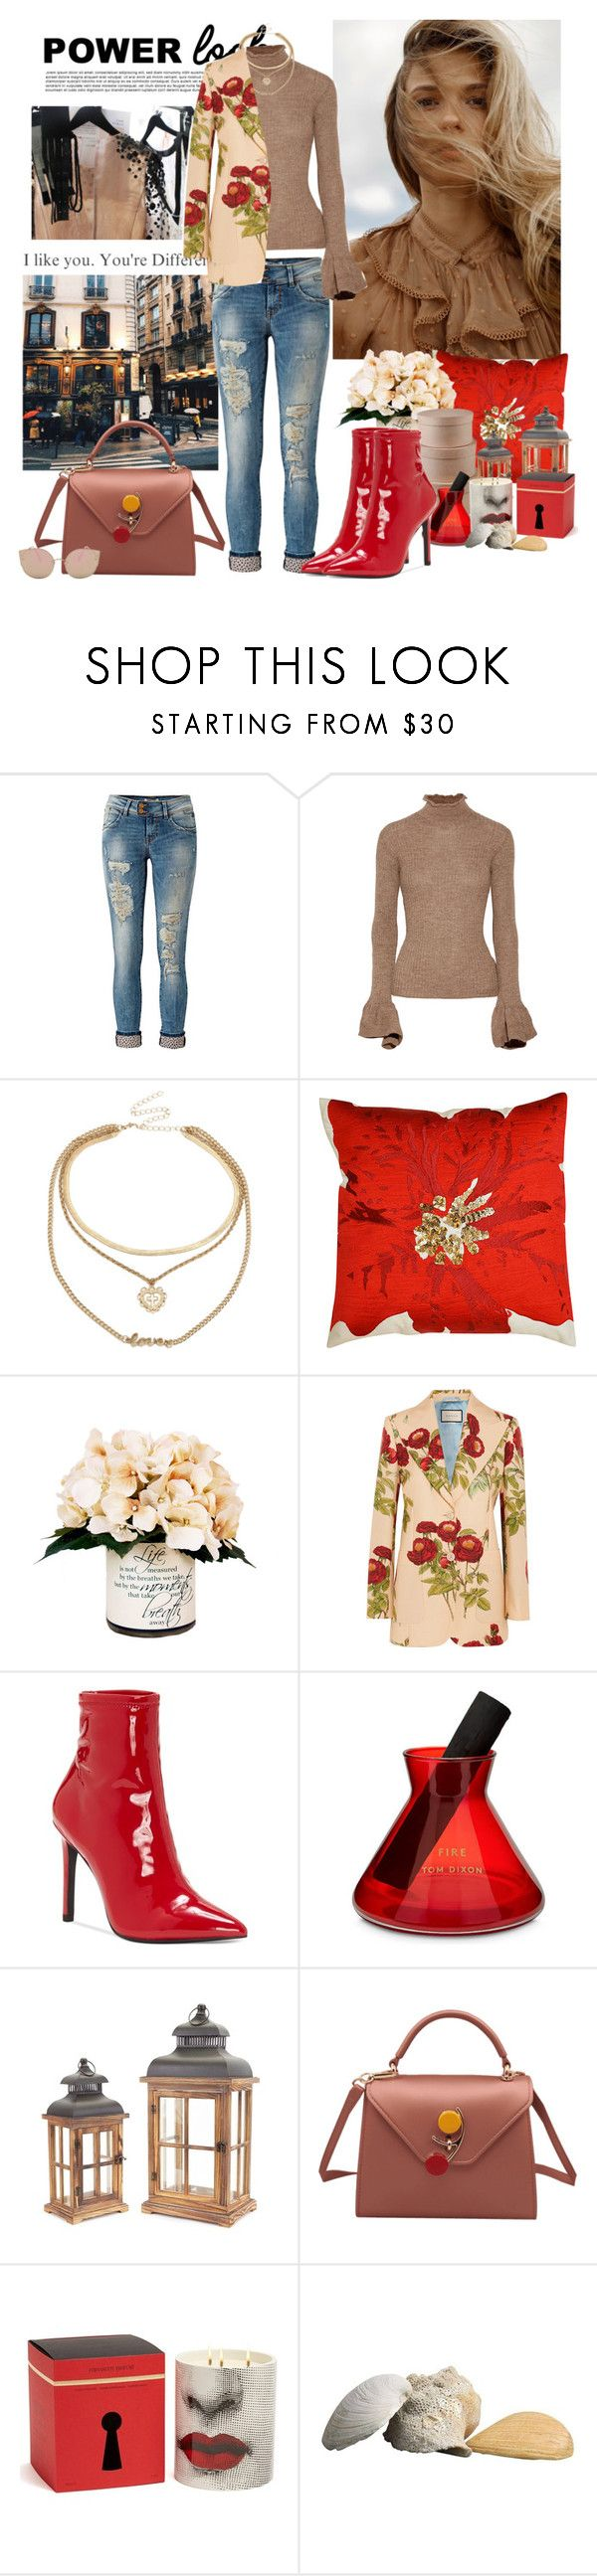 """Untitled #857"" by moni4e ❤ liked on Polyvore featuring LTB, Acne Studios, Hallmark, Creative Displays, Gucci, Jessica Simpson, Tom Dixon, Melrose International and Fornasetti"